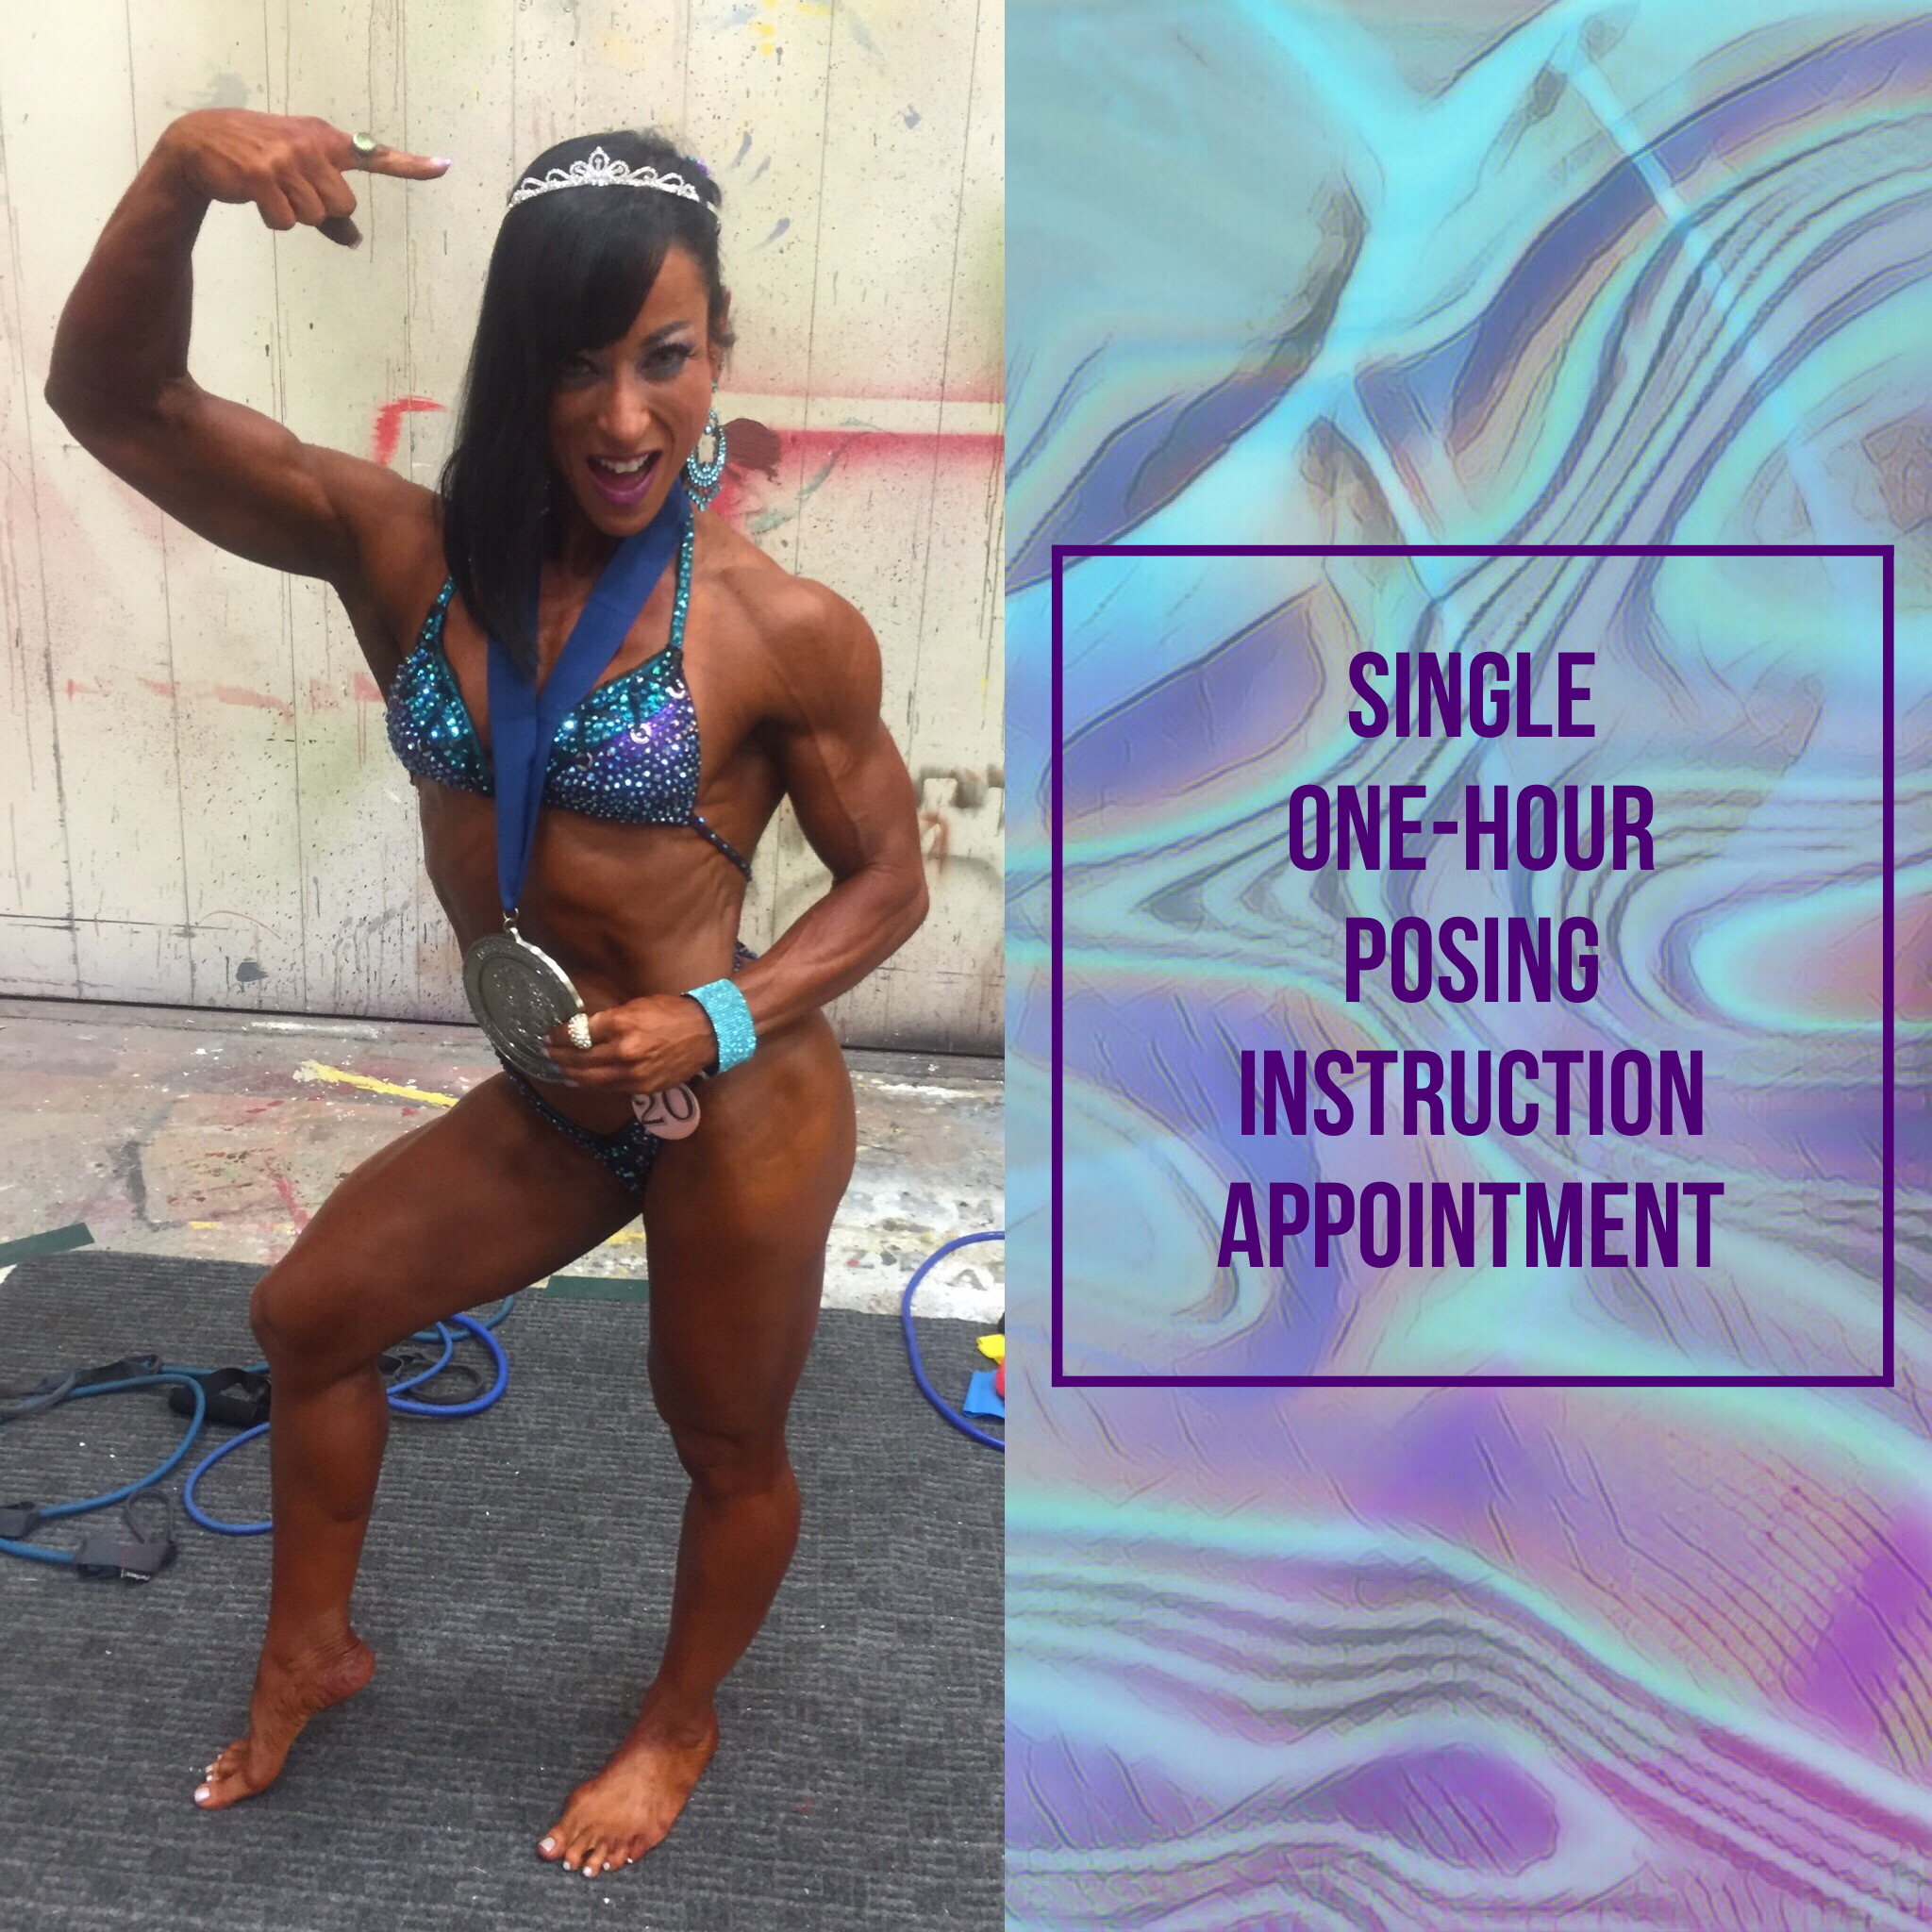 Single 1-Hour Posing Instruction Appointment POSING001